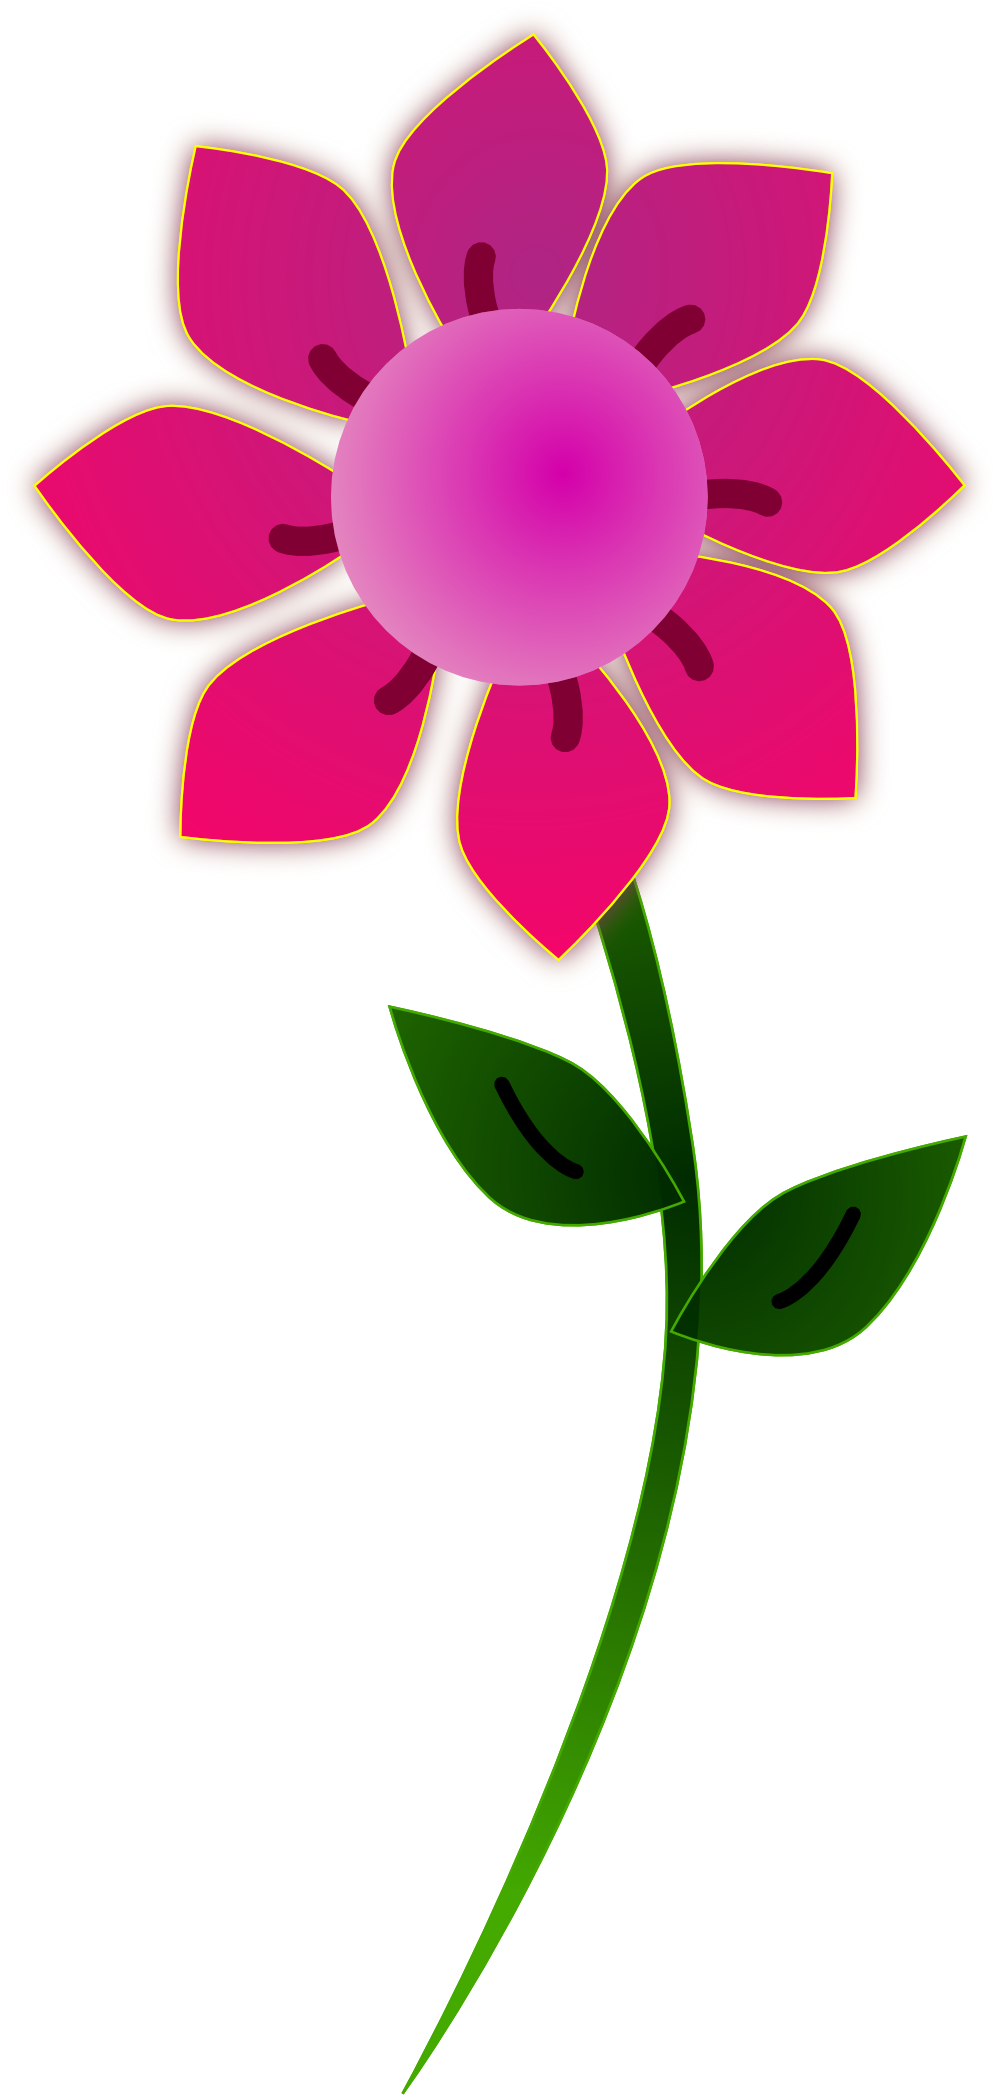 Free flower clip art graphics of flowers for layouts image 6.